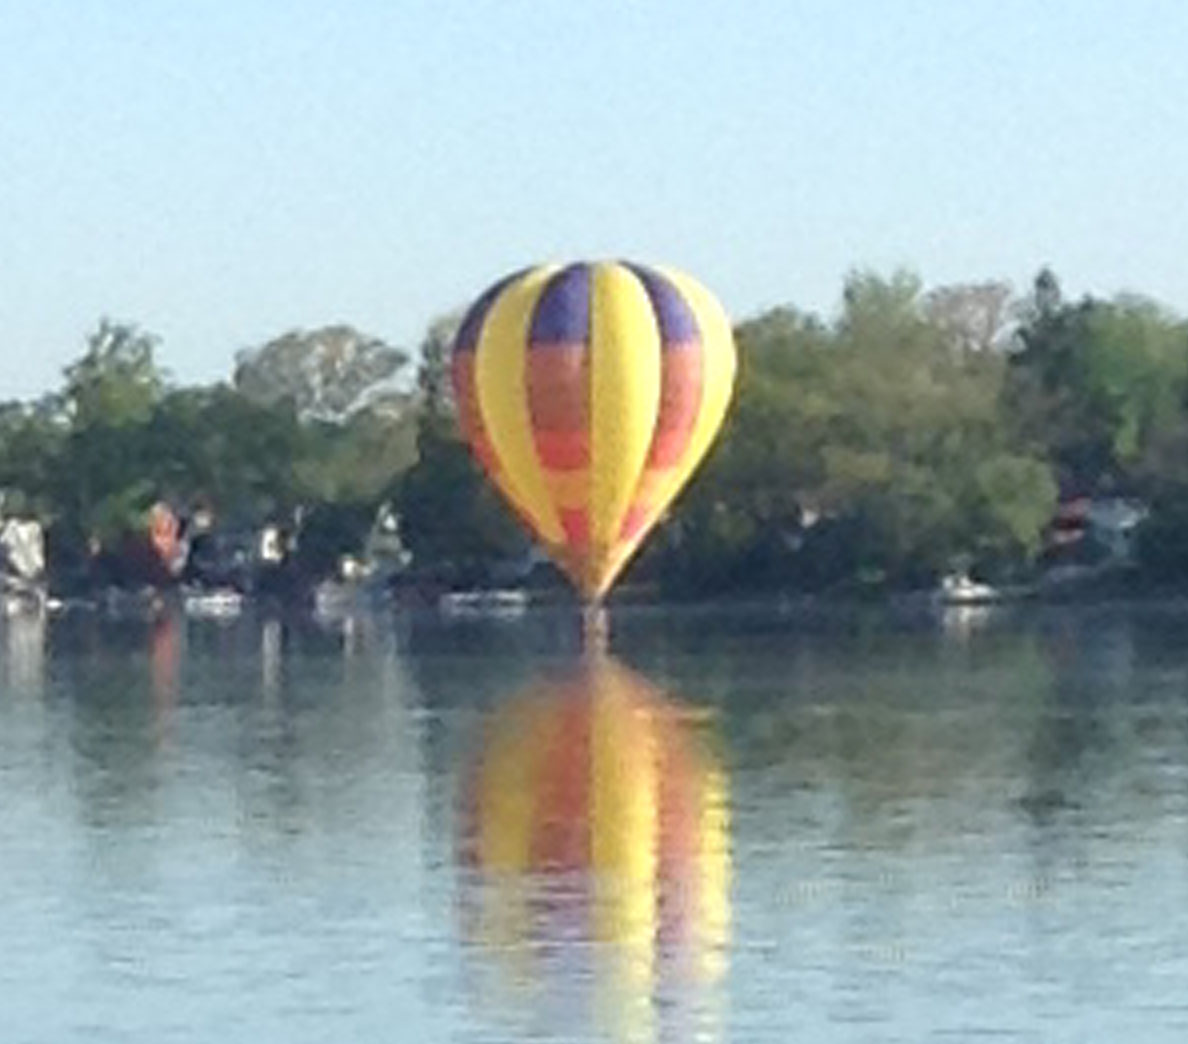 Mike and Nancy Ligibel, on the southeast shore of the west side of the lake, took this photo as the balloon touched the water across from them.